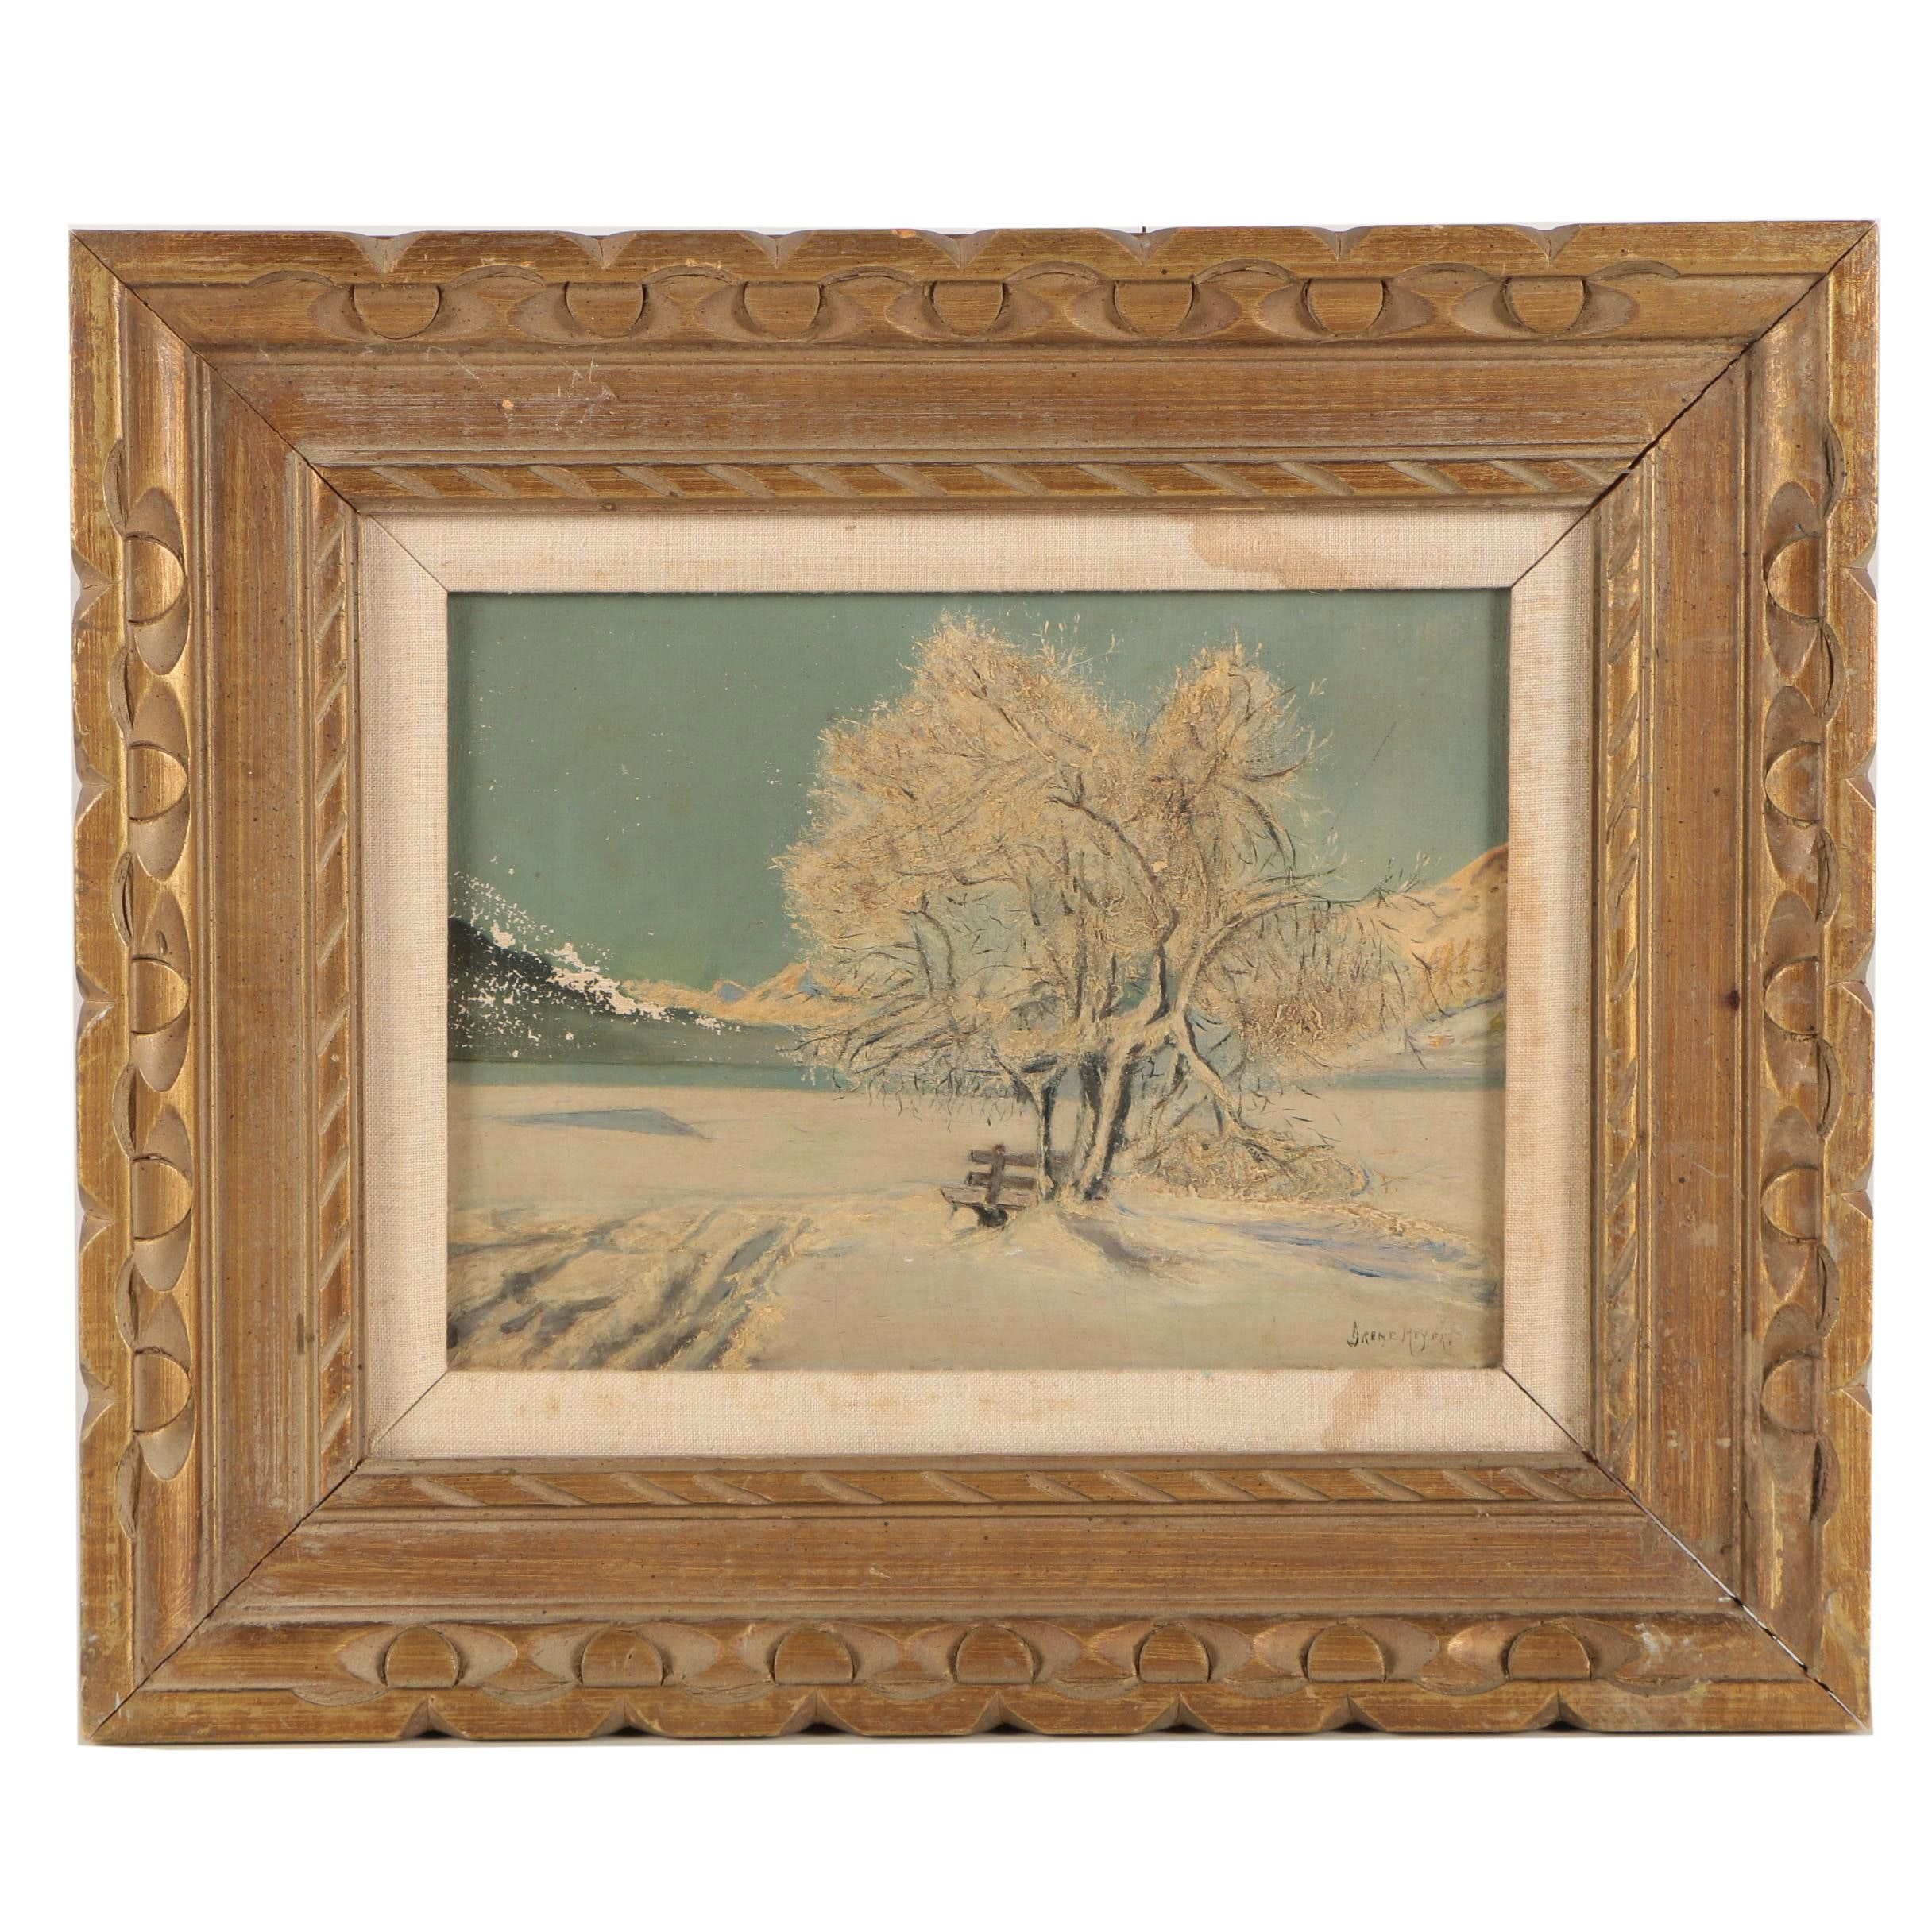 Irene Meyers Oil Painting of a Snowy Landscape